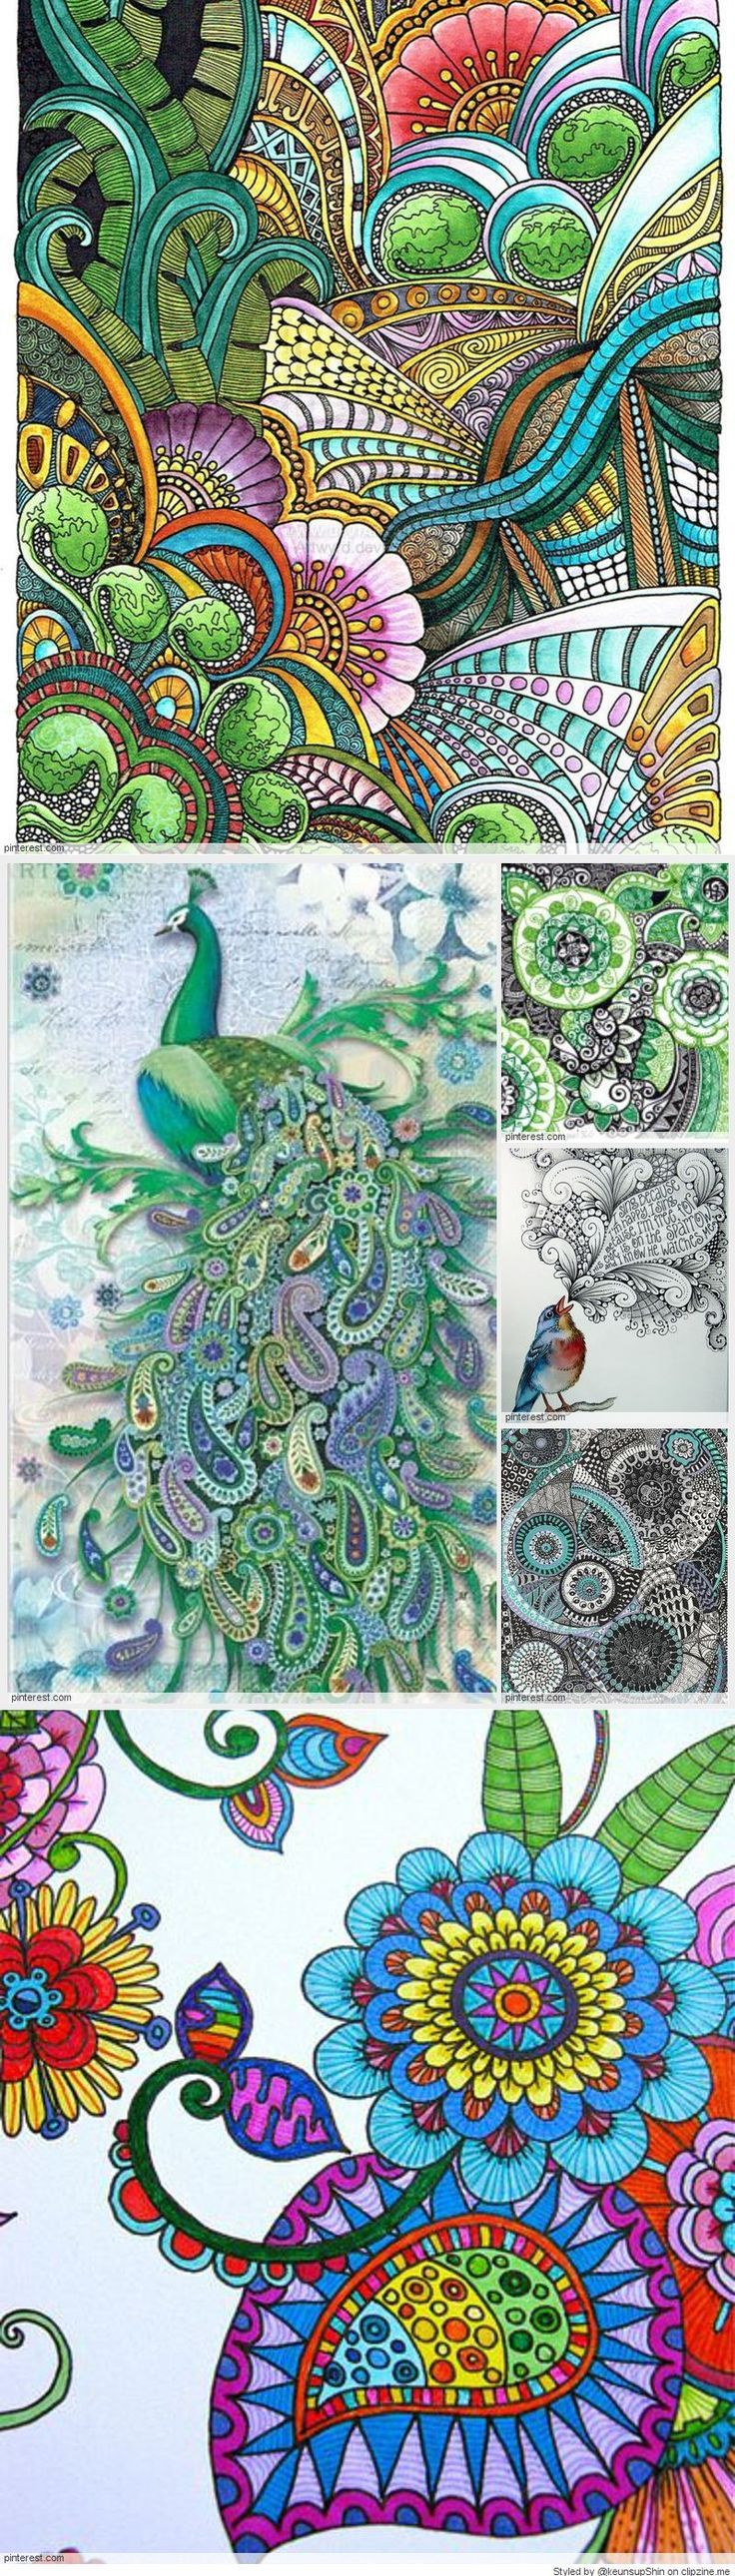 Zen doodle colour - You Can Do This With Colored Pencils Get A Set Of 48 Aurora Colored Pencils